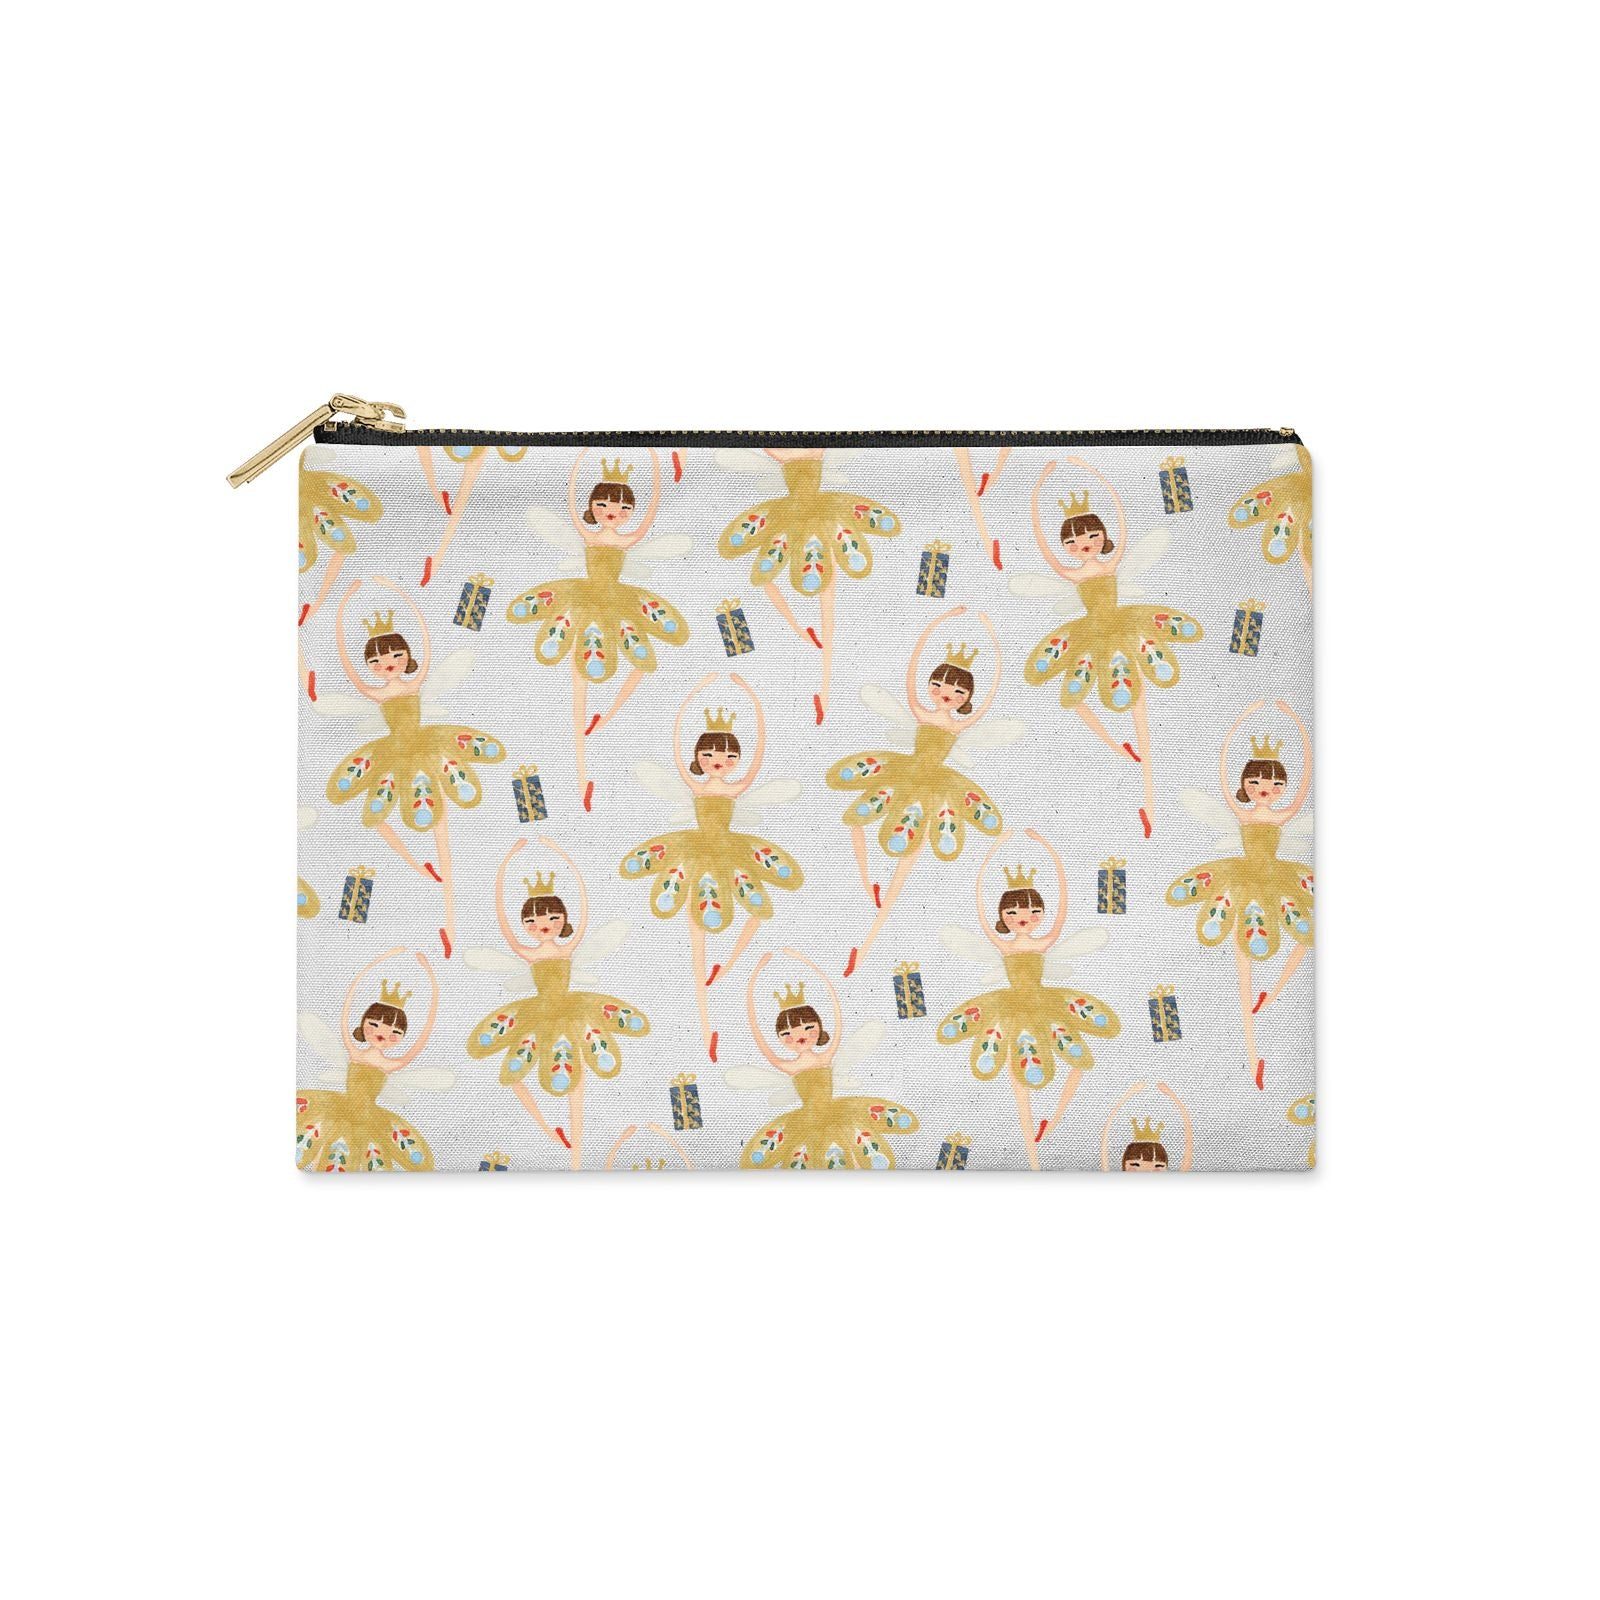 Dancing ballerina princess Clutch Bag Zipper Pouch